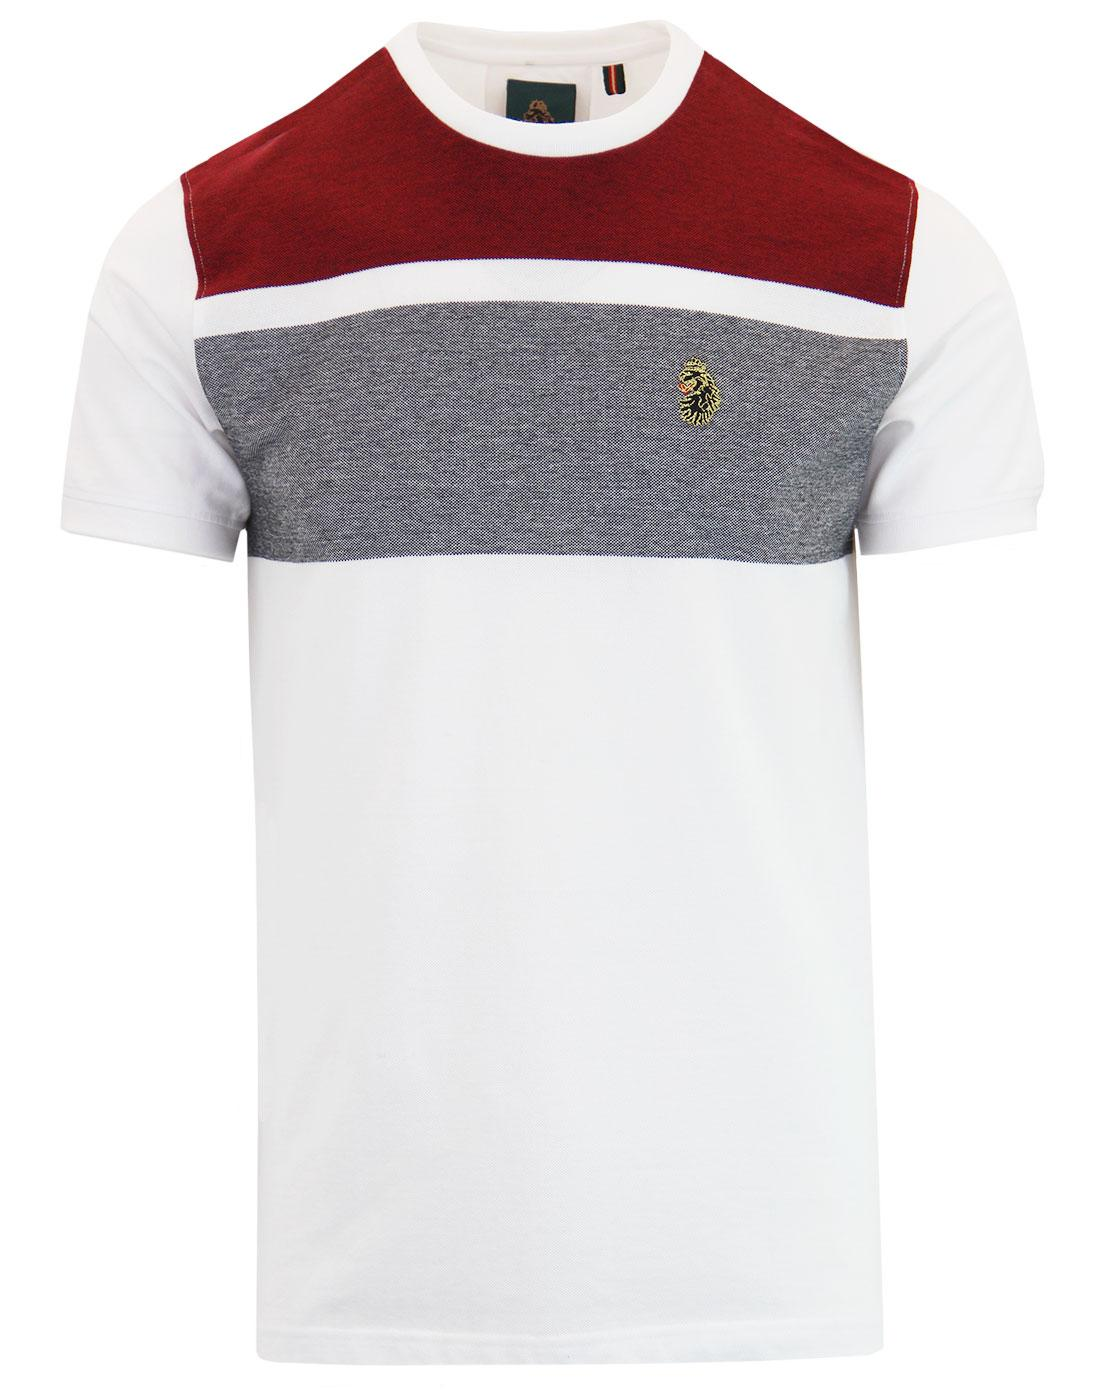 Warnock LUKE Men's Retro Chest Panel Oxford Tee